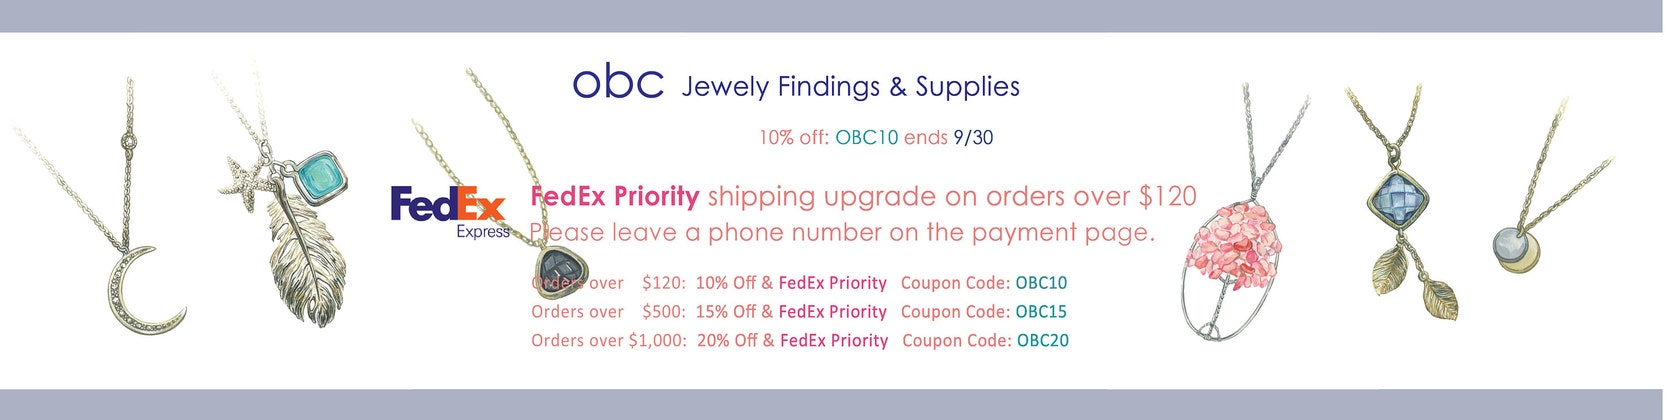 Handmade Jewelry Findings & Supplies Coupon: OBC10 von OBCsupply